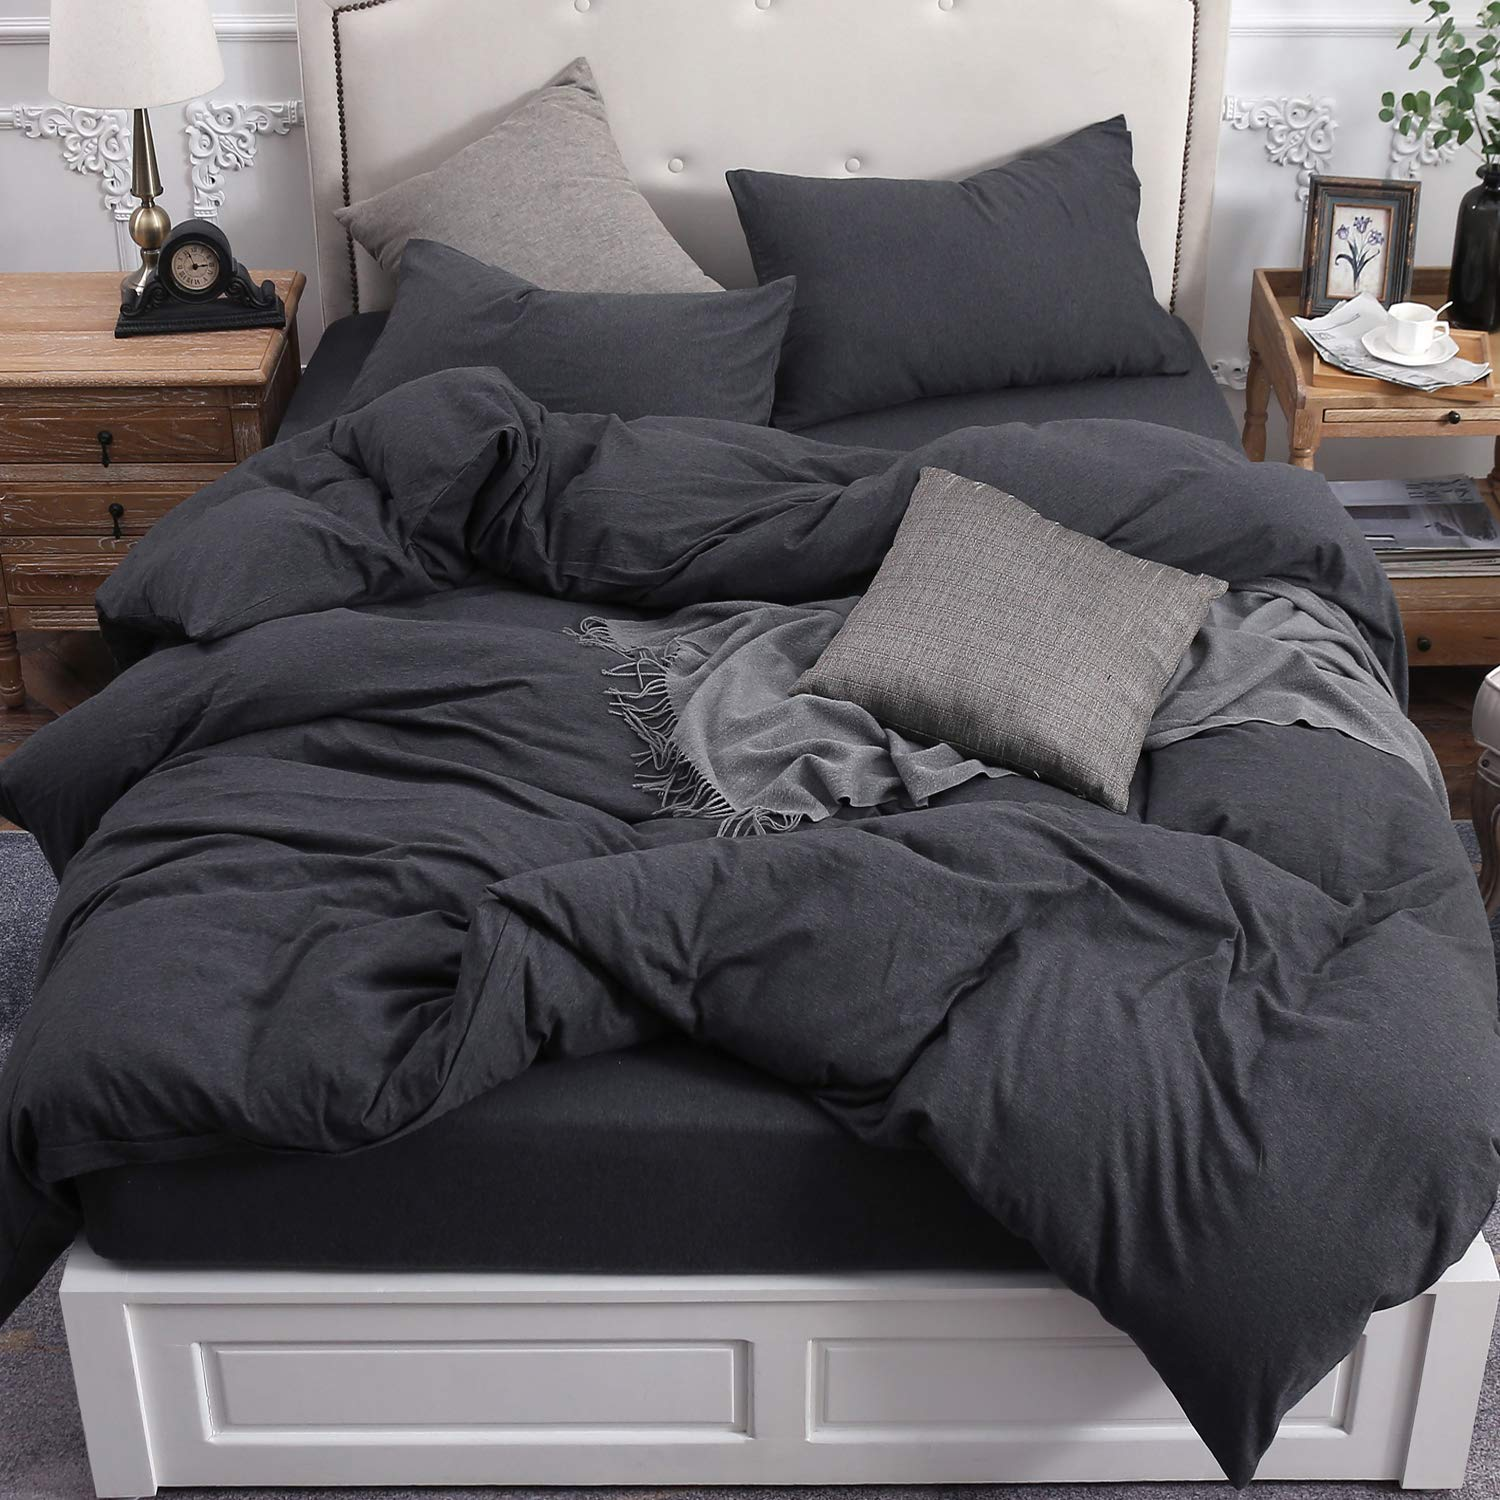 PURE ERA Duvet Cover Set 100% Cotton Jersey Knit Bedding, Super Soft Comfy, Heathered Charcoal Black King, with Zipper Closure (3pc Set, 1 Comforter Cover + 2 Pillow Shams)